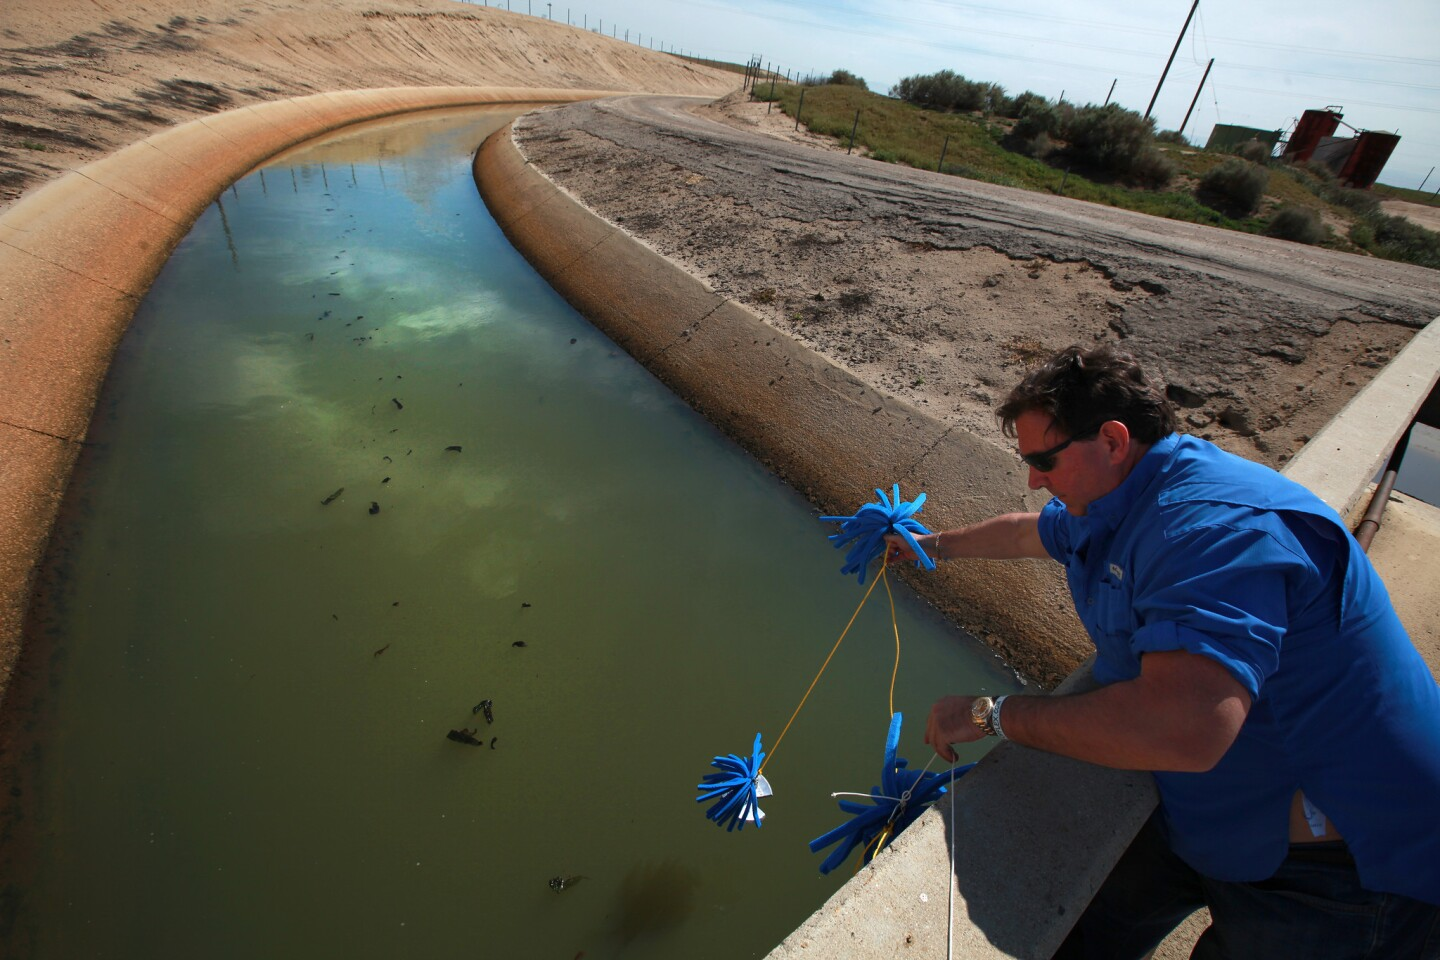 Scott Smith, chief scientist at Water Defense, deploys foam sponges to absorb test water from a canal operated by the Cawelo Water District near Bakersfield. The canal moves oil-produced water mixed with fresh water for use by Kern County farms.